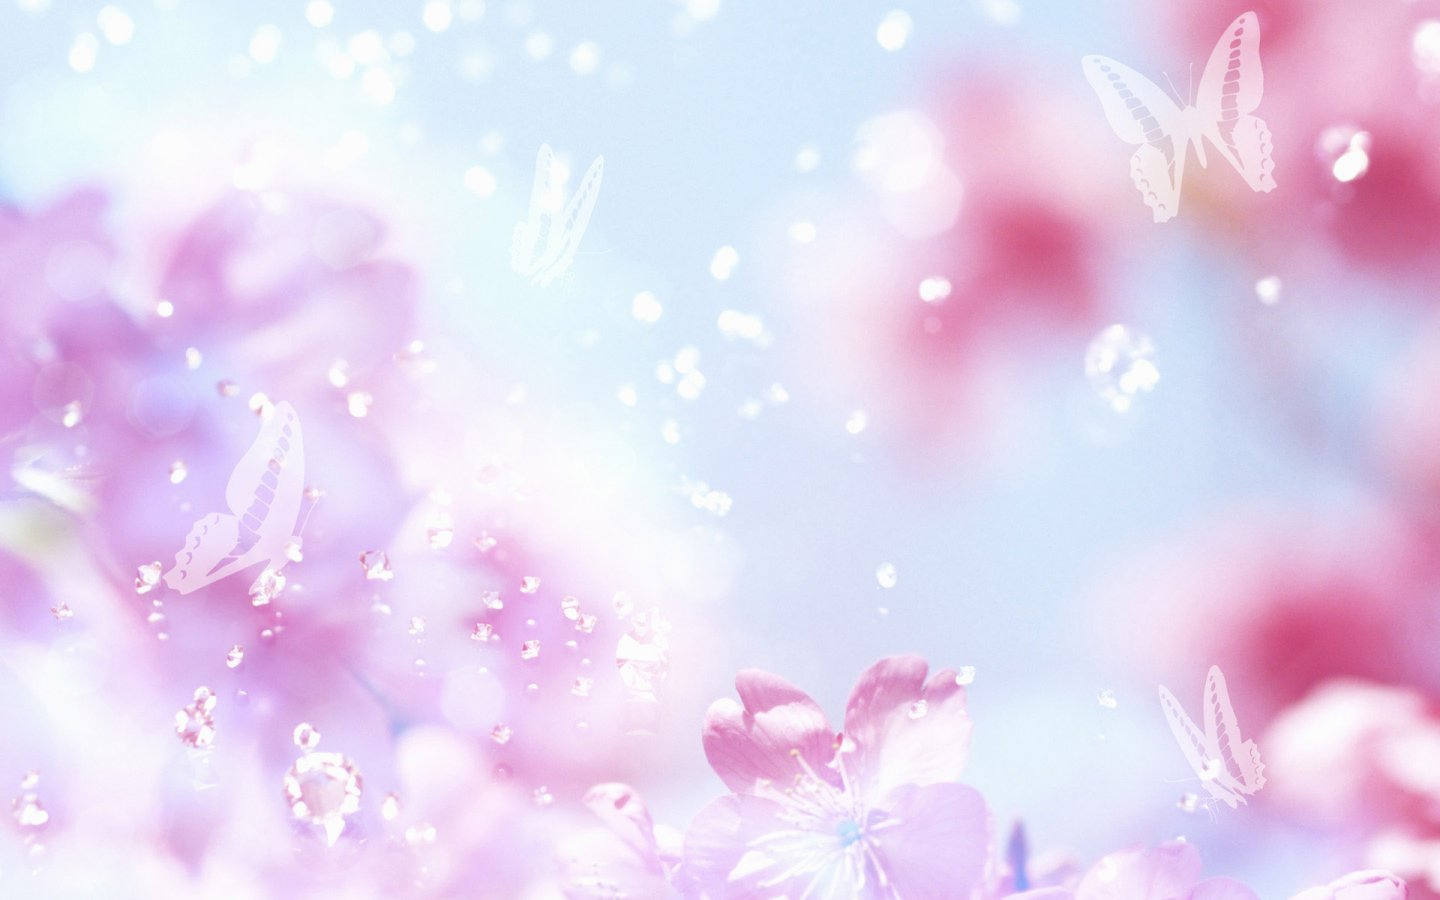 Beautiful flowers background 1440x900 Wallpapers 1440x900 Wallpapers 1440x900